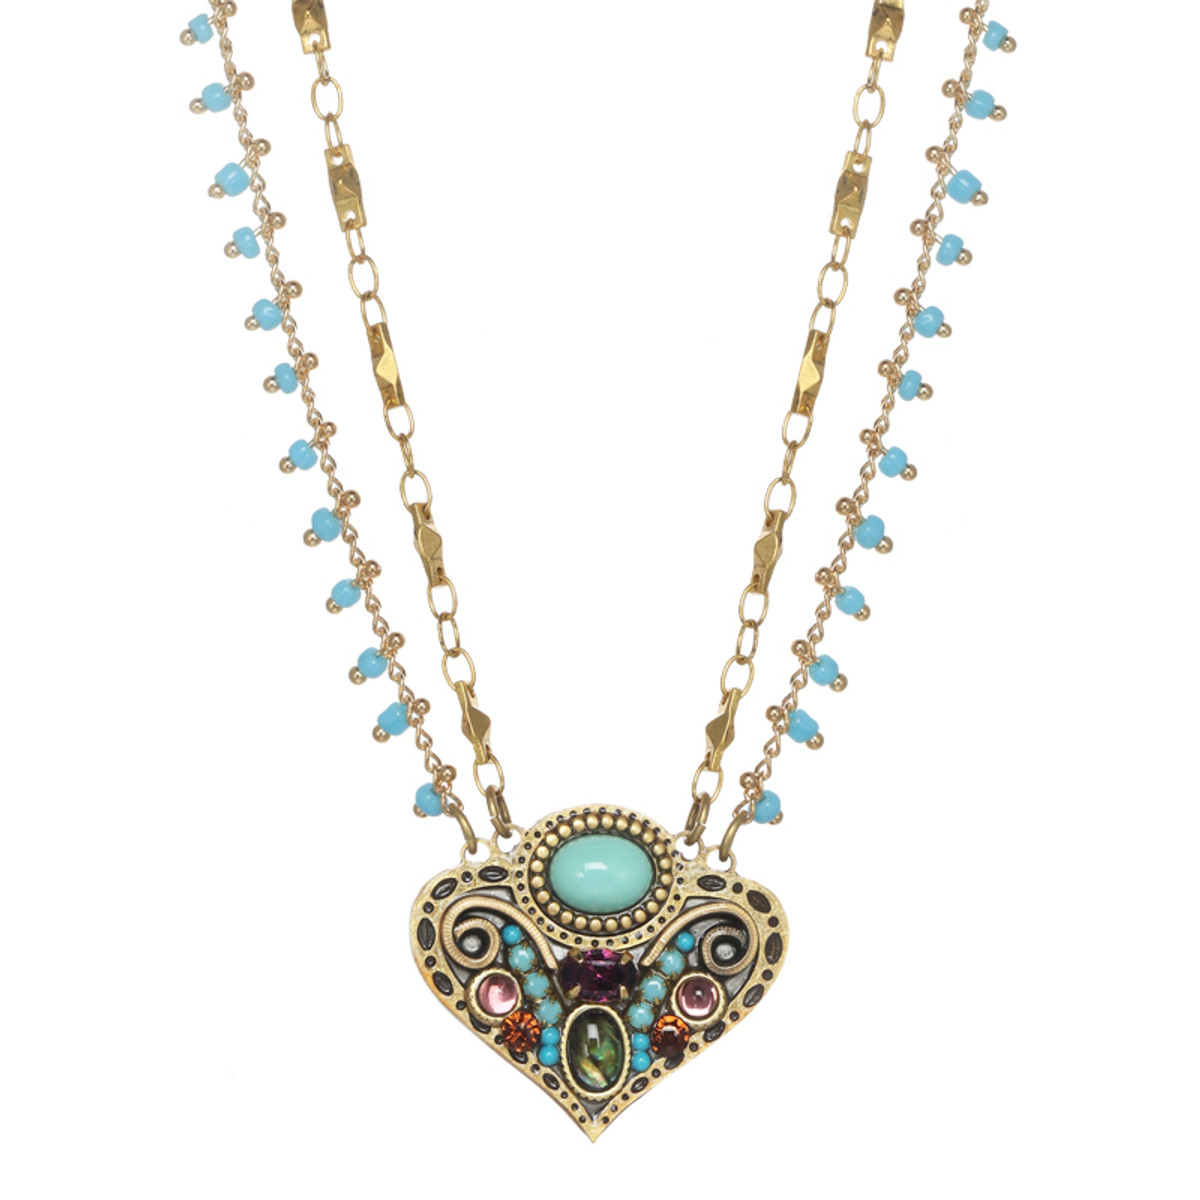 Michal Golan Kasbah Necklace